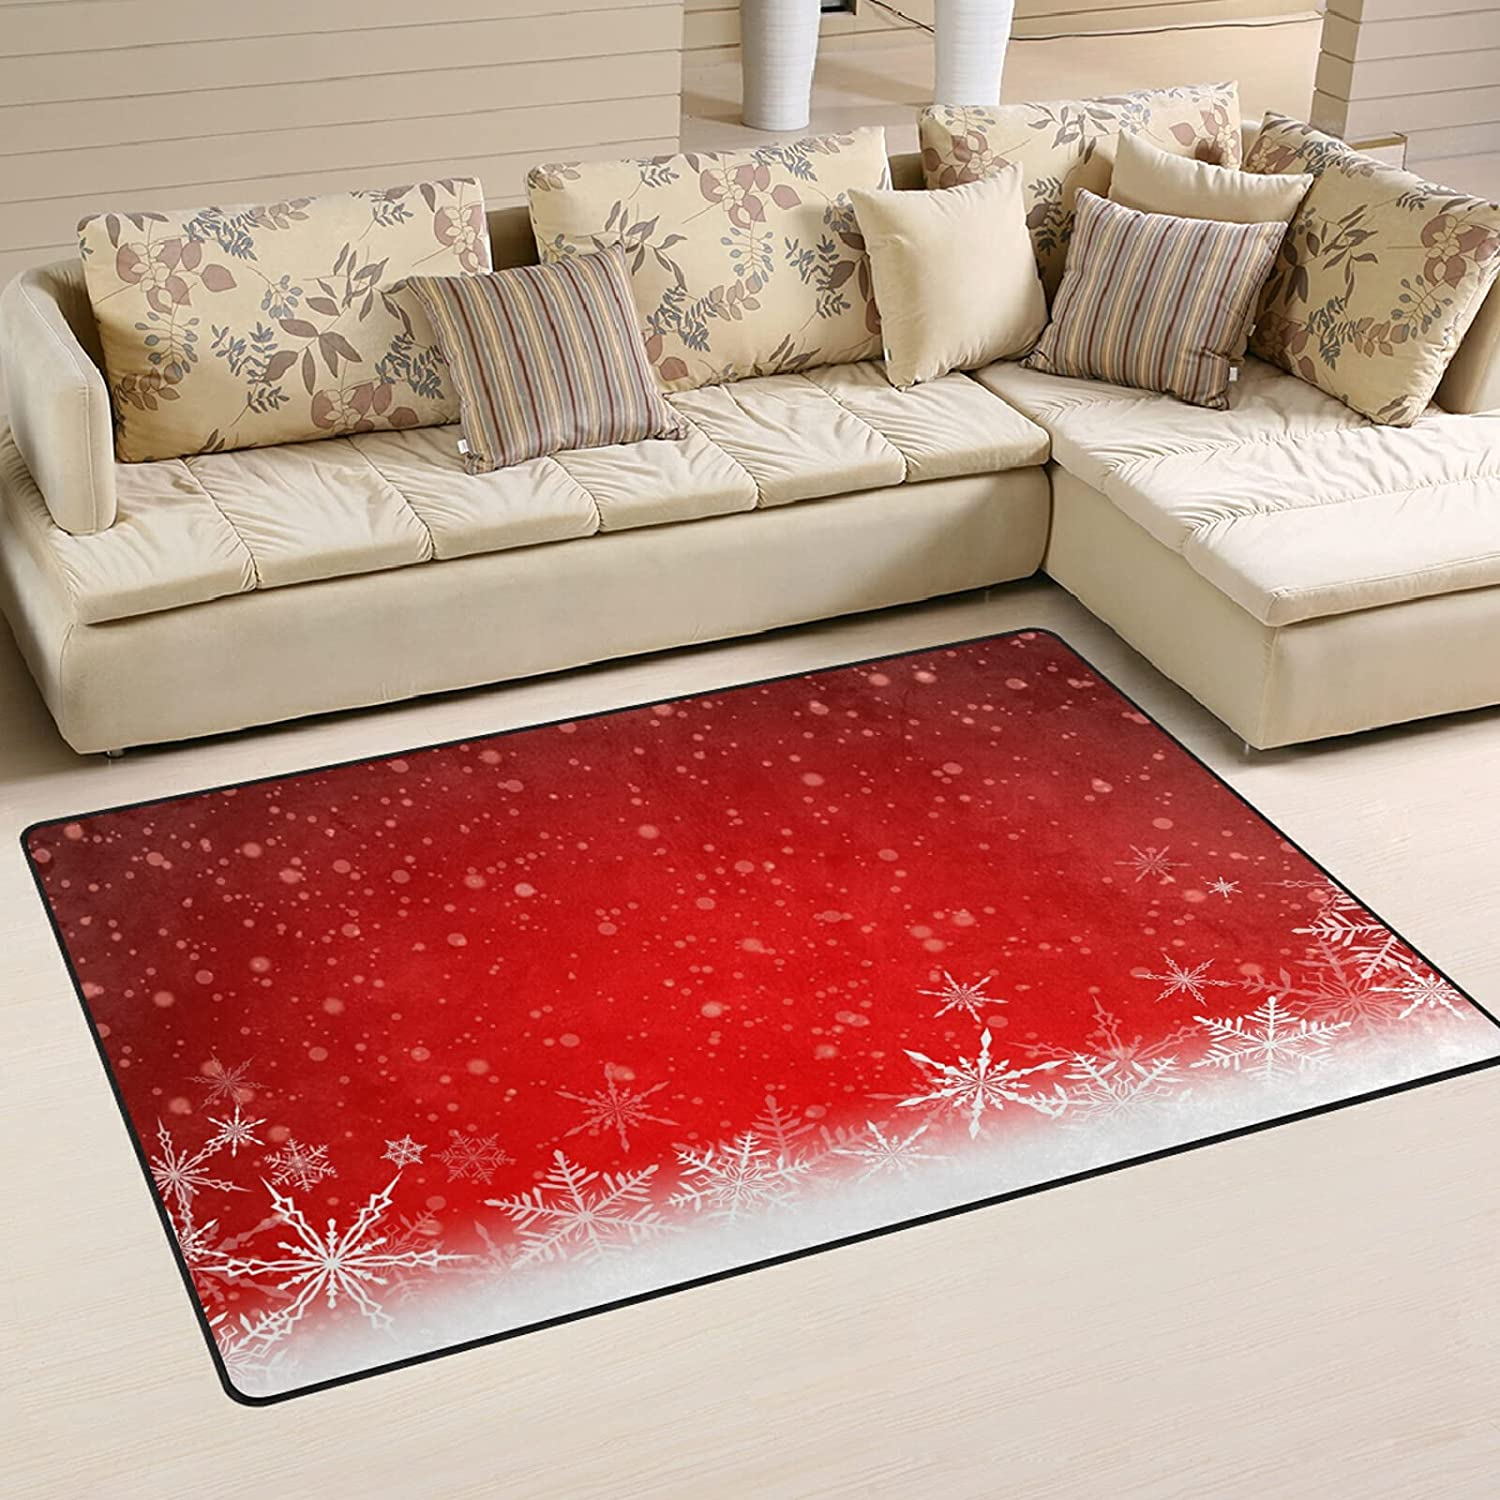 Red Louisville-Jefferson County Mall Winter Snowflakes Large Soft 40% OFF Cheap Sale Area Nursery Playmat M Rugs Rug